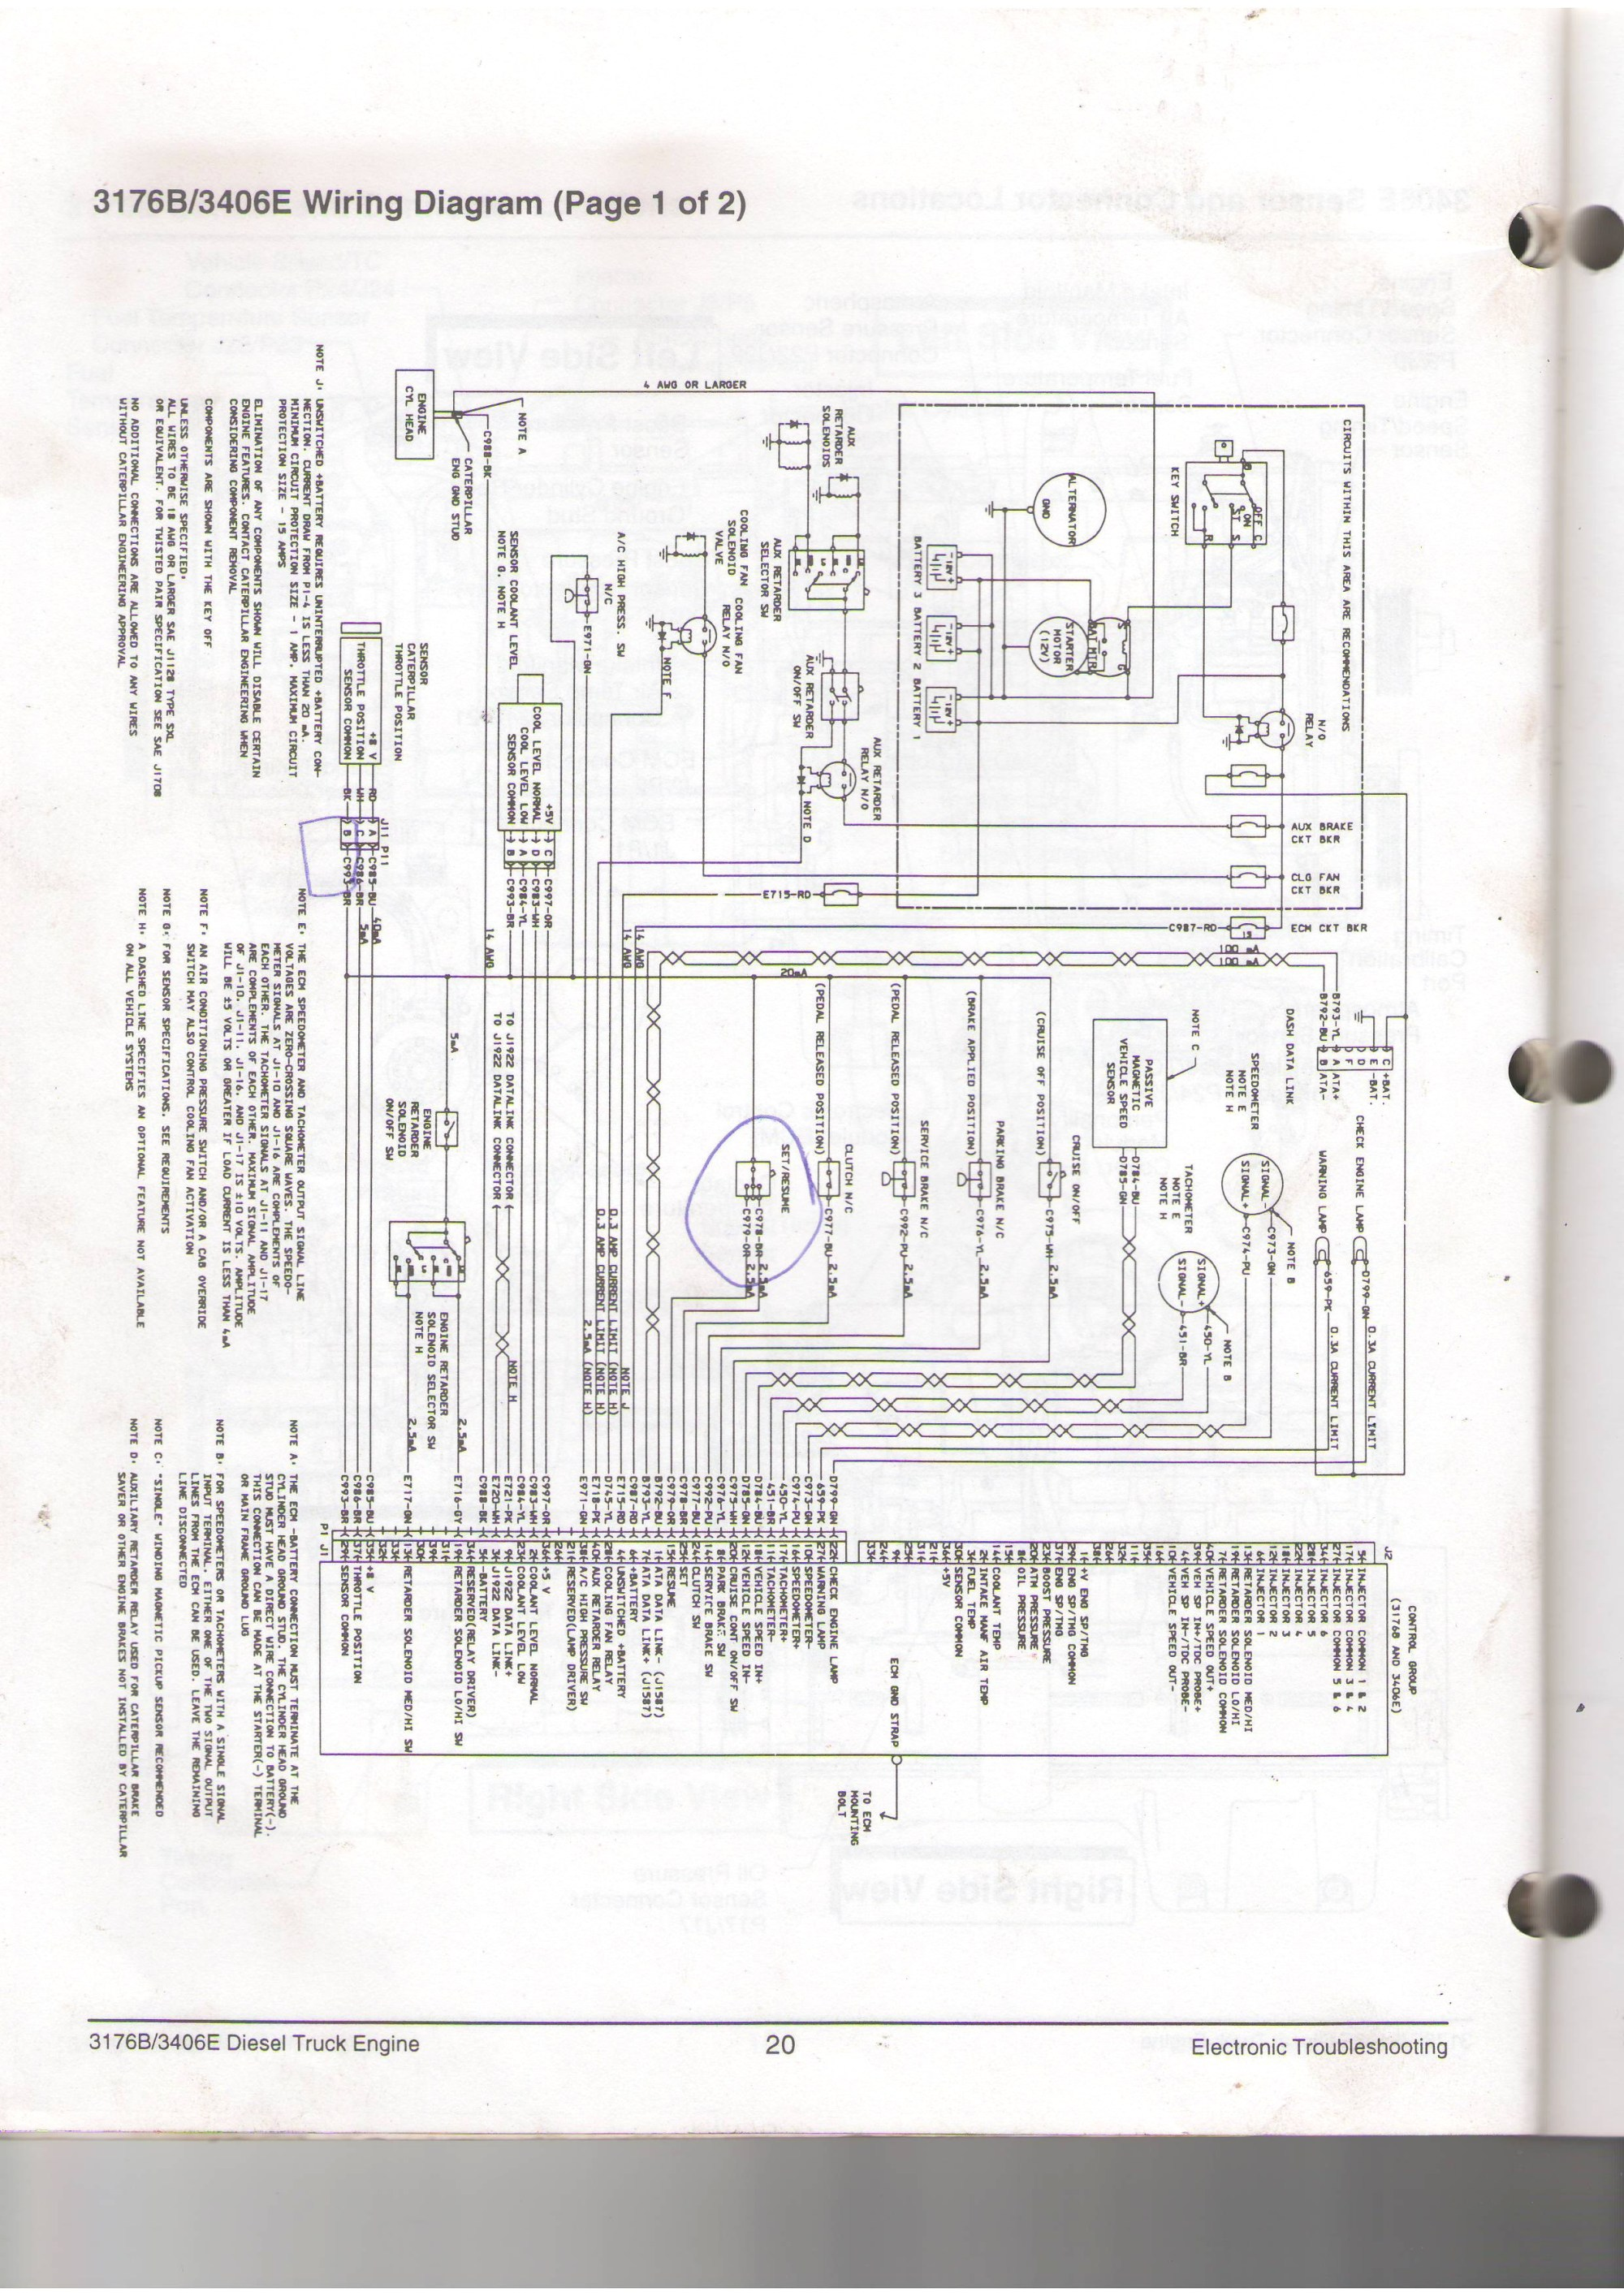 hight resolution of cat ecm pin wiring diagram 70 c10 wiring diagram schema cat c10 ecm wiring diagram